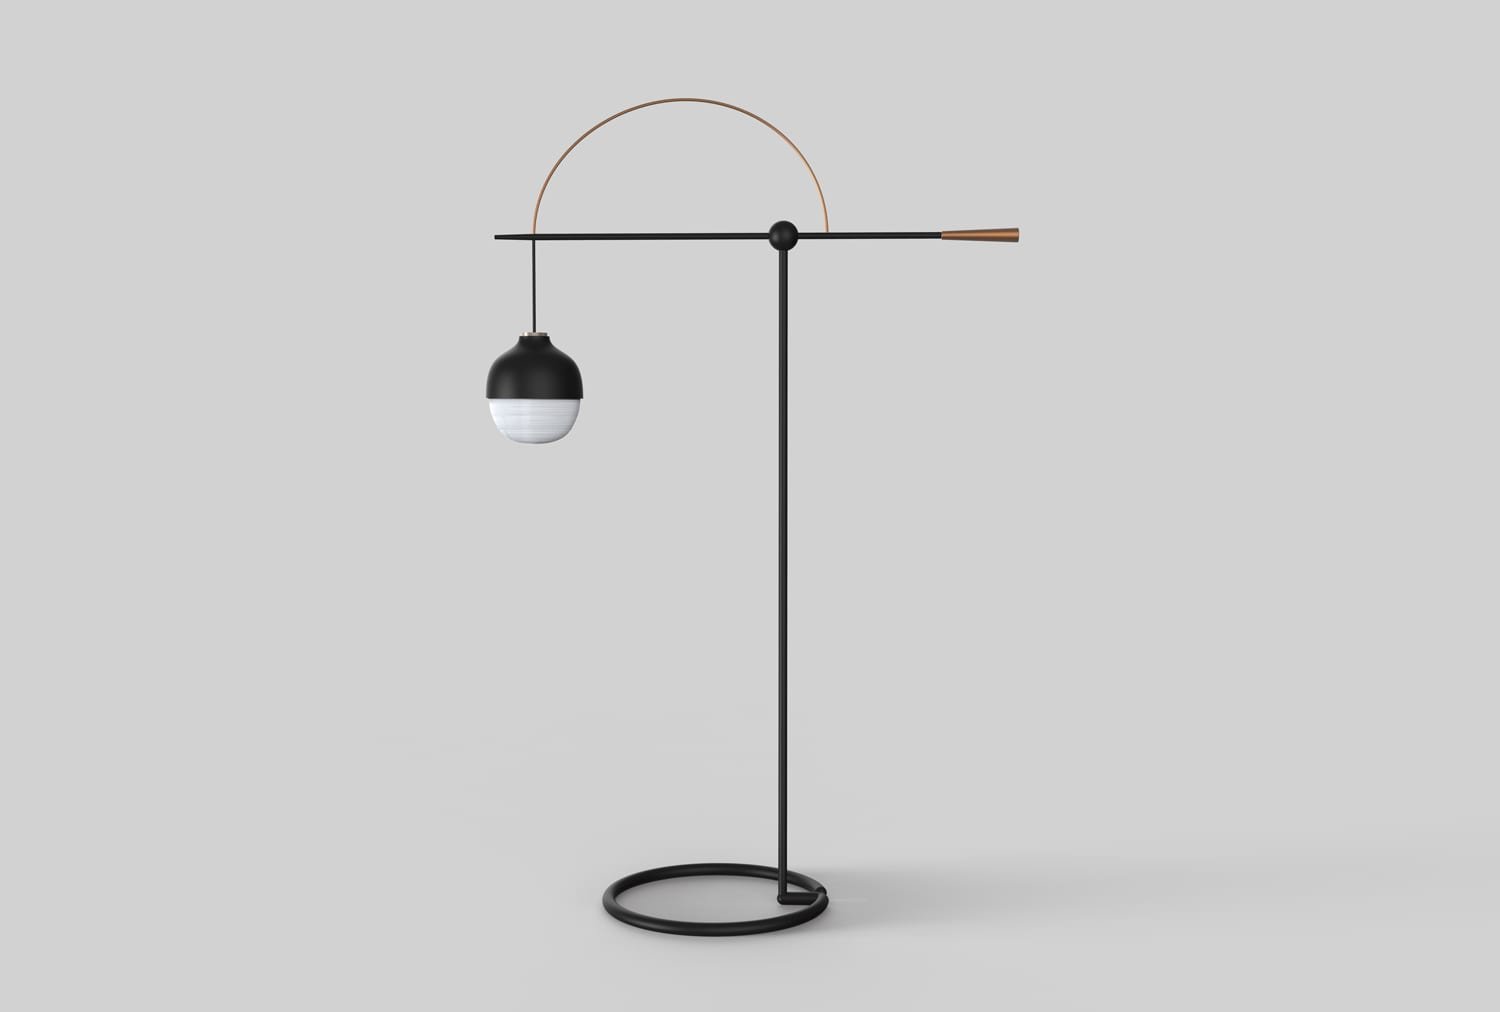 Landscape Floor Lamp by KIMU Design | Yellowtrace